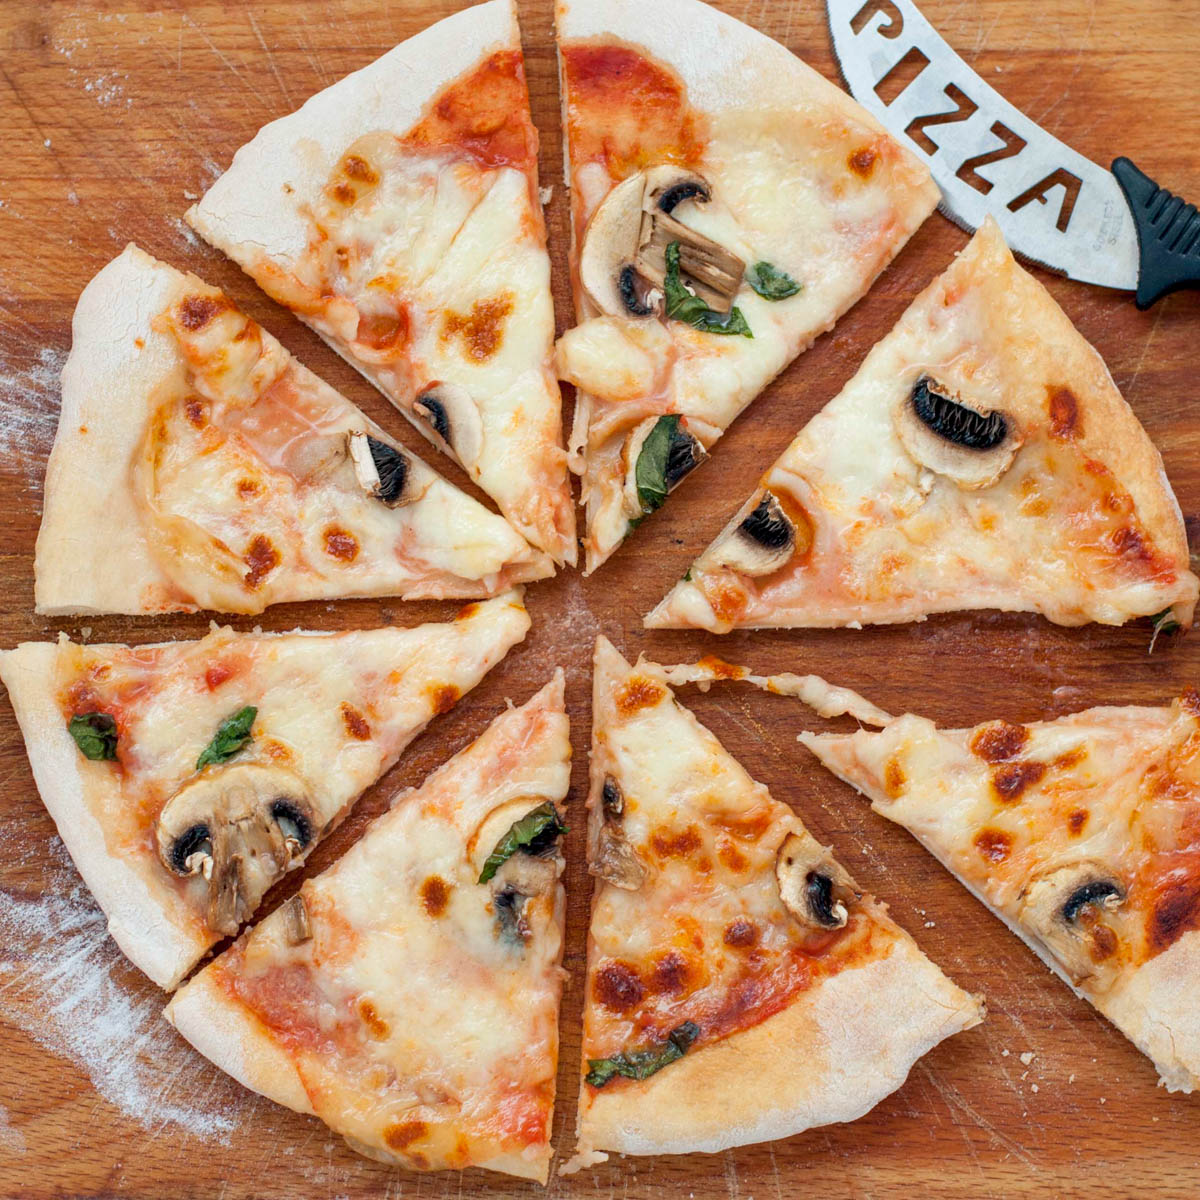 List of pizza toppings with vegetables